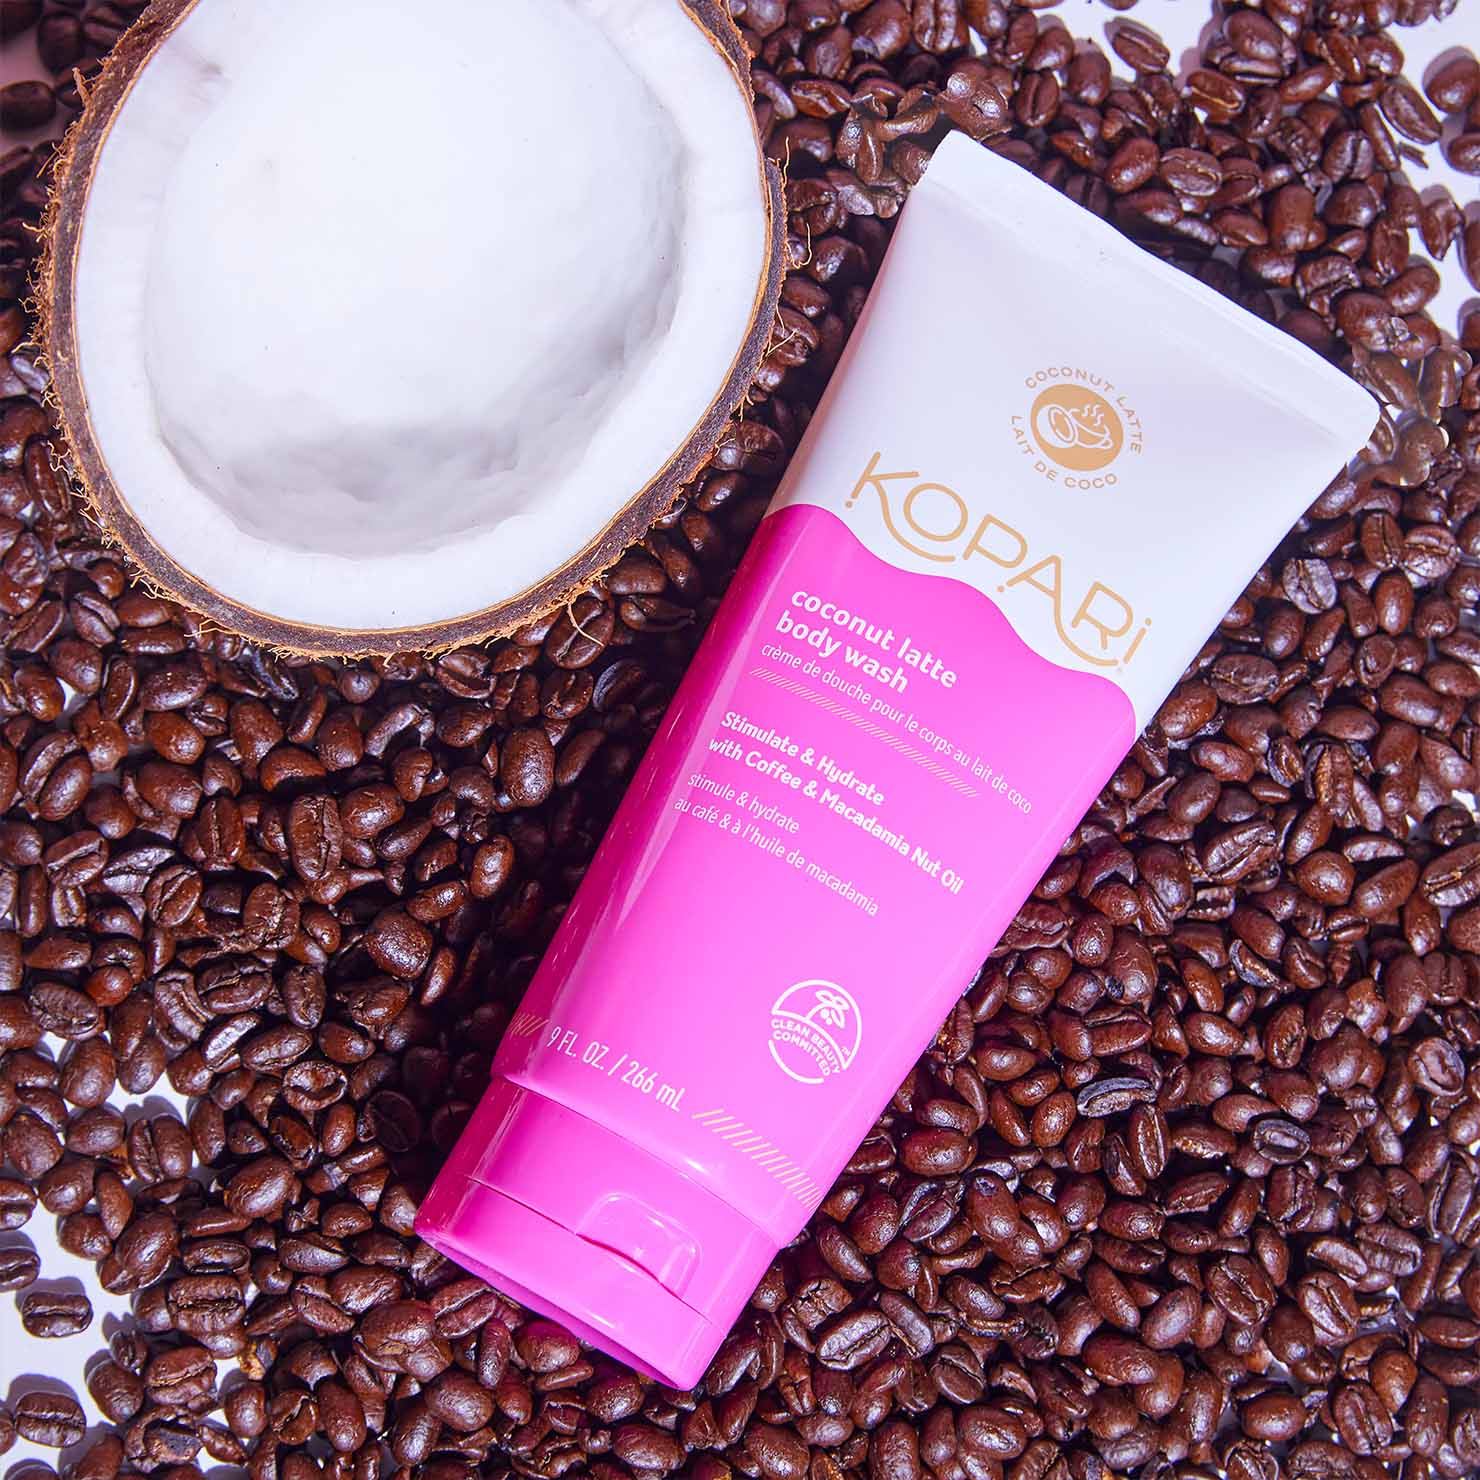 Coconut Latte Energizing Body Wash with Caffeine and Macadamia Seed Oil